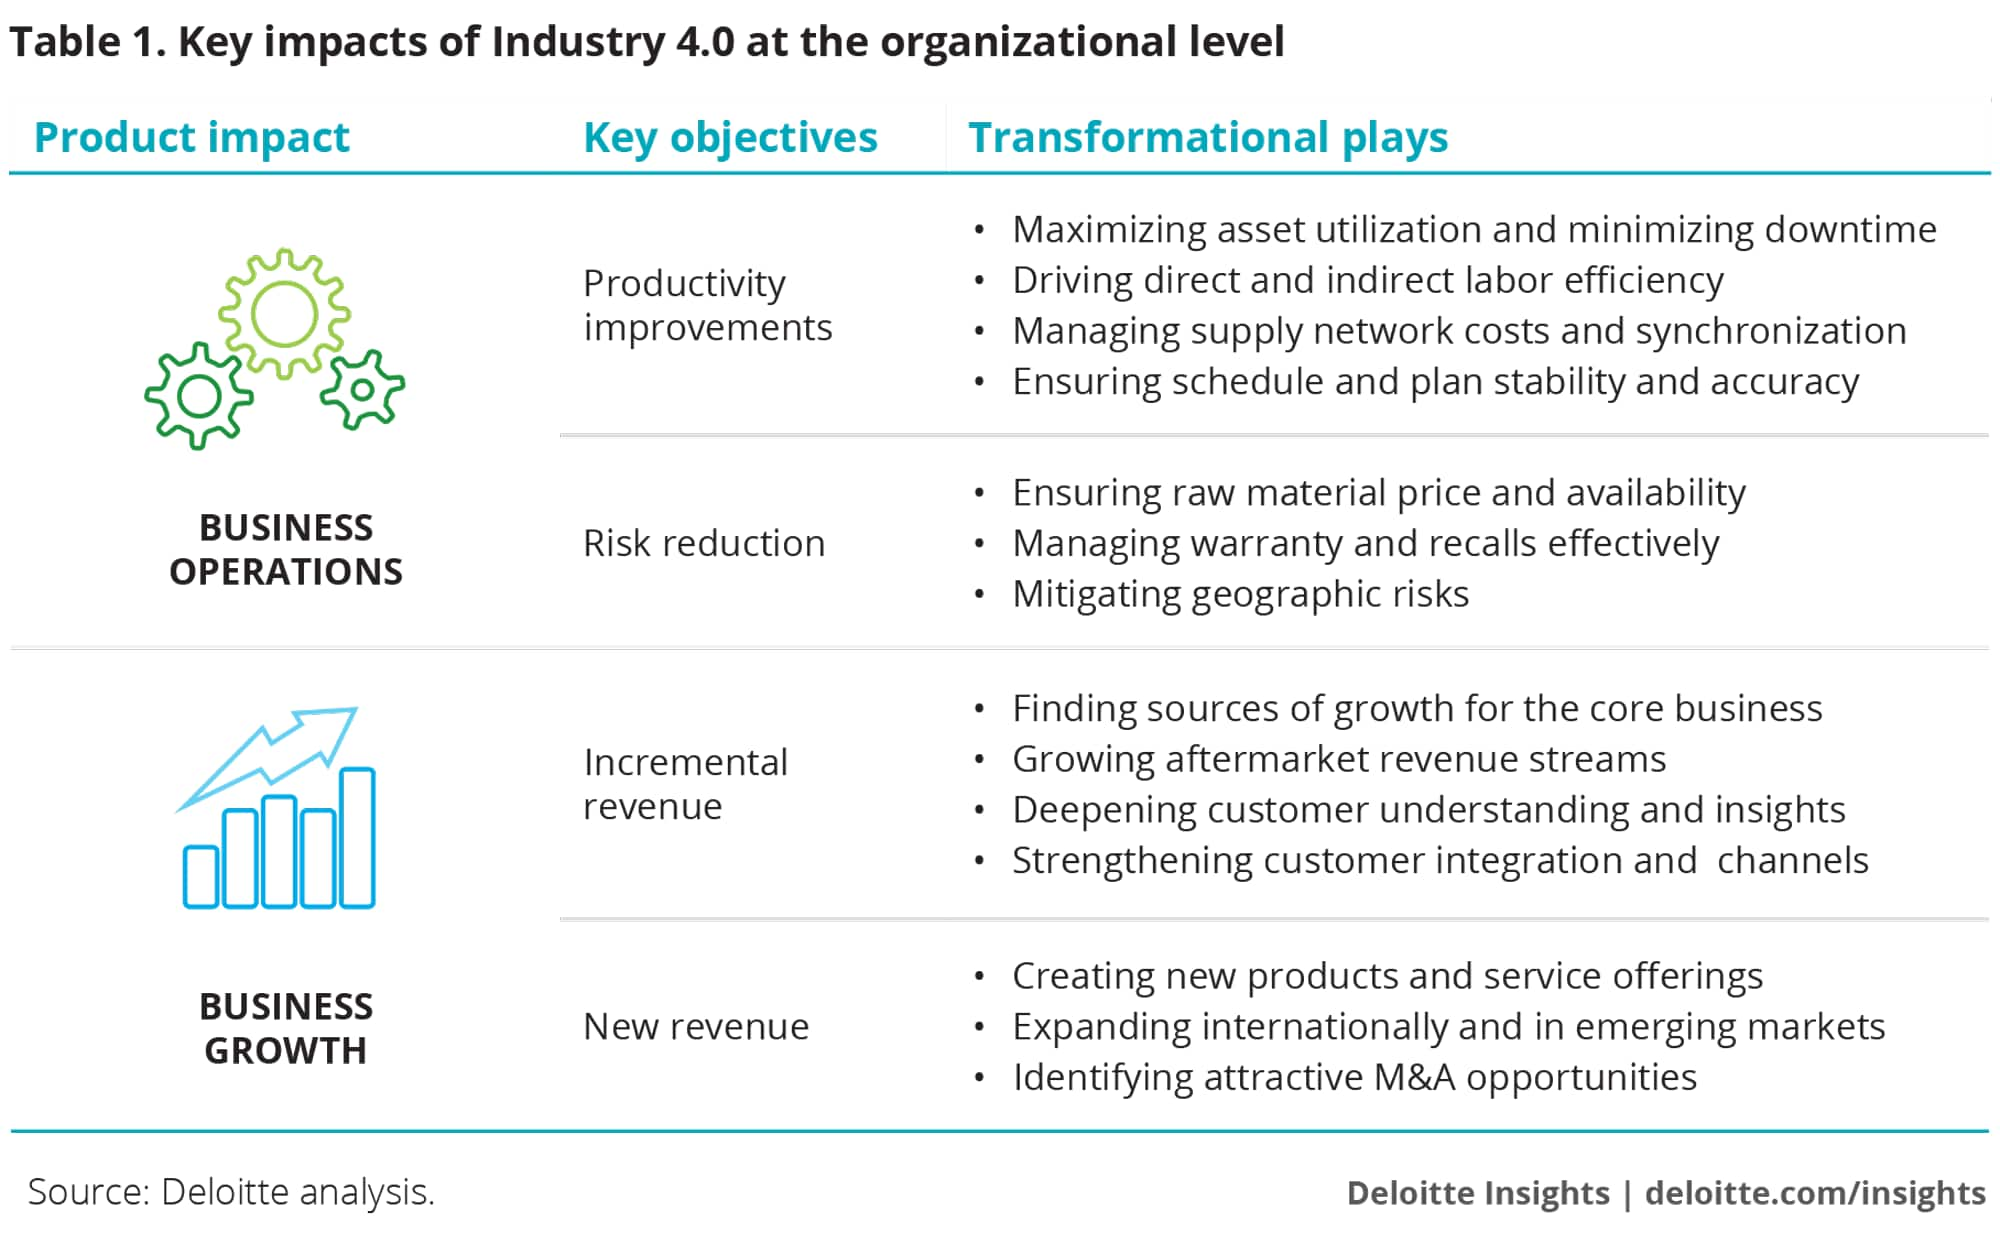 Key impacts of Industry 4.0 at the organizational level